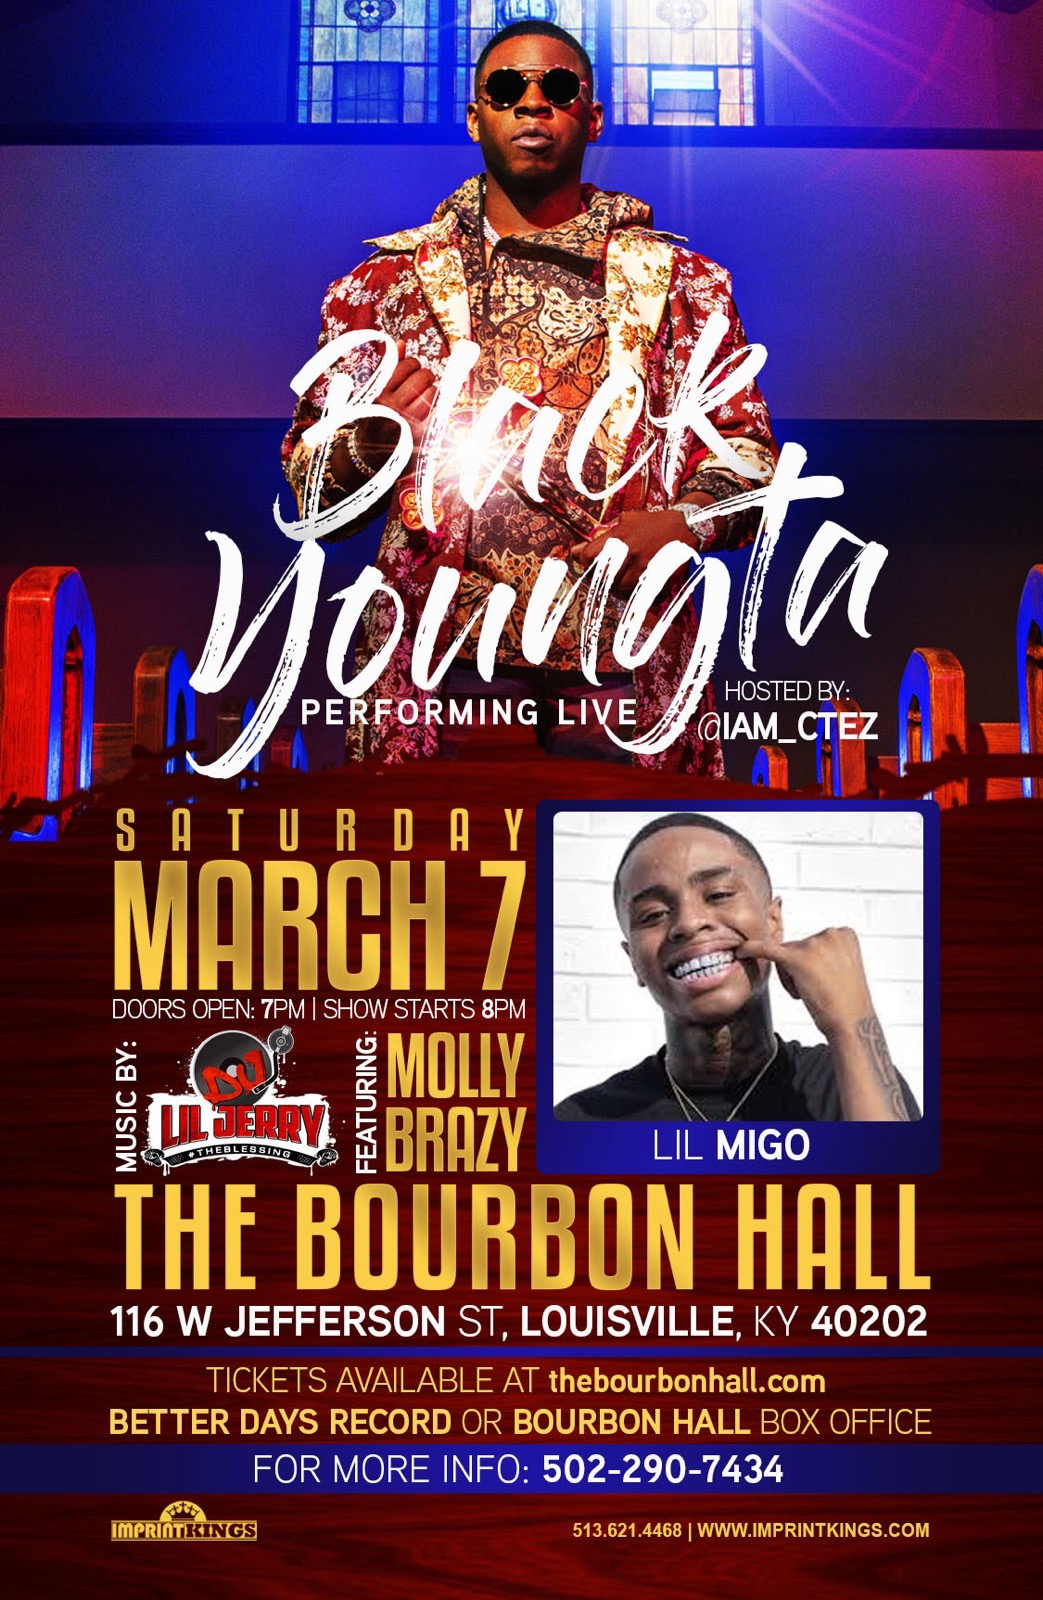 Black Youngsta Performing Live